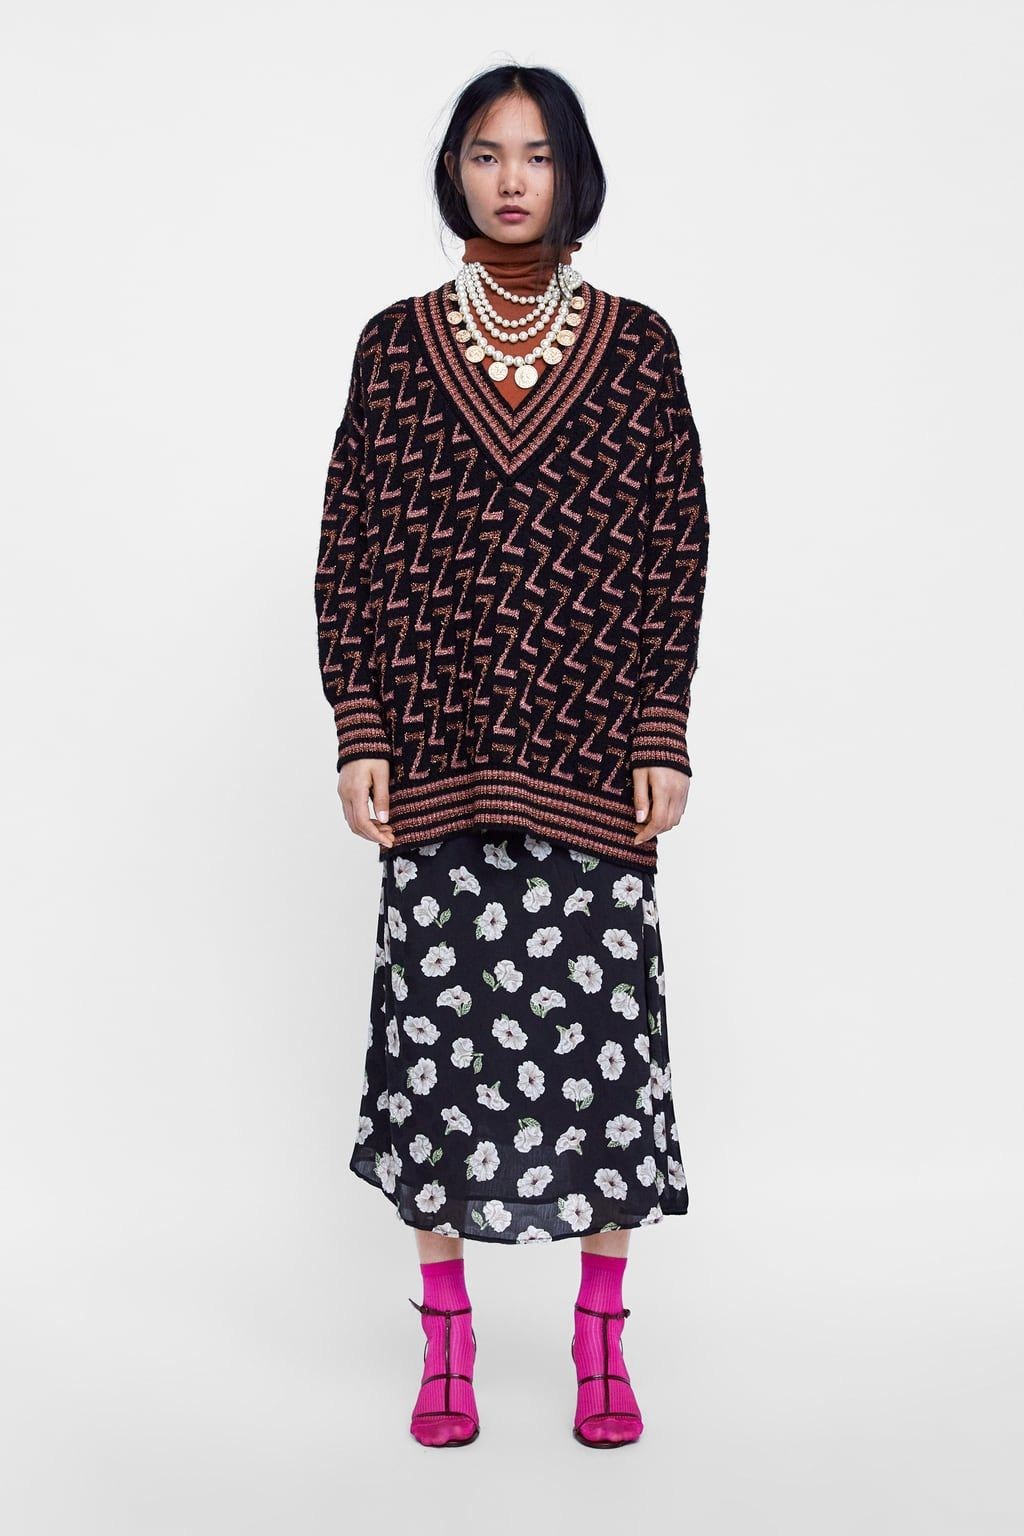 This Fall You Definitely Need A Printed Midi Skirt In